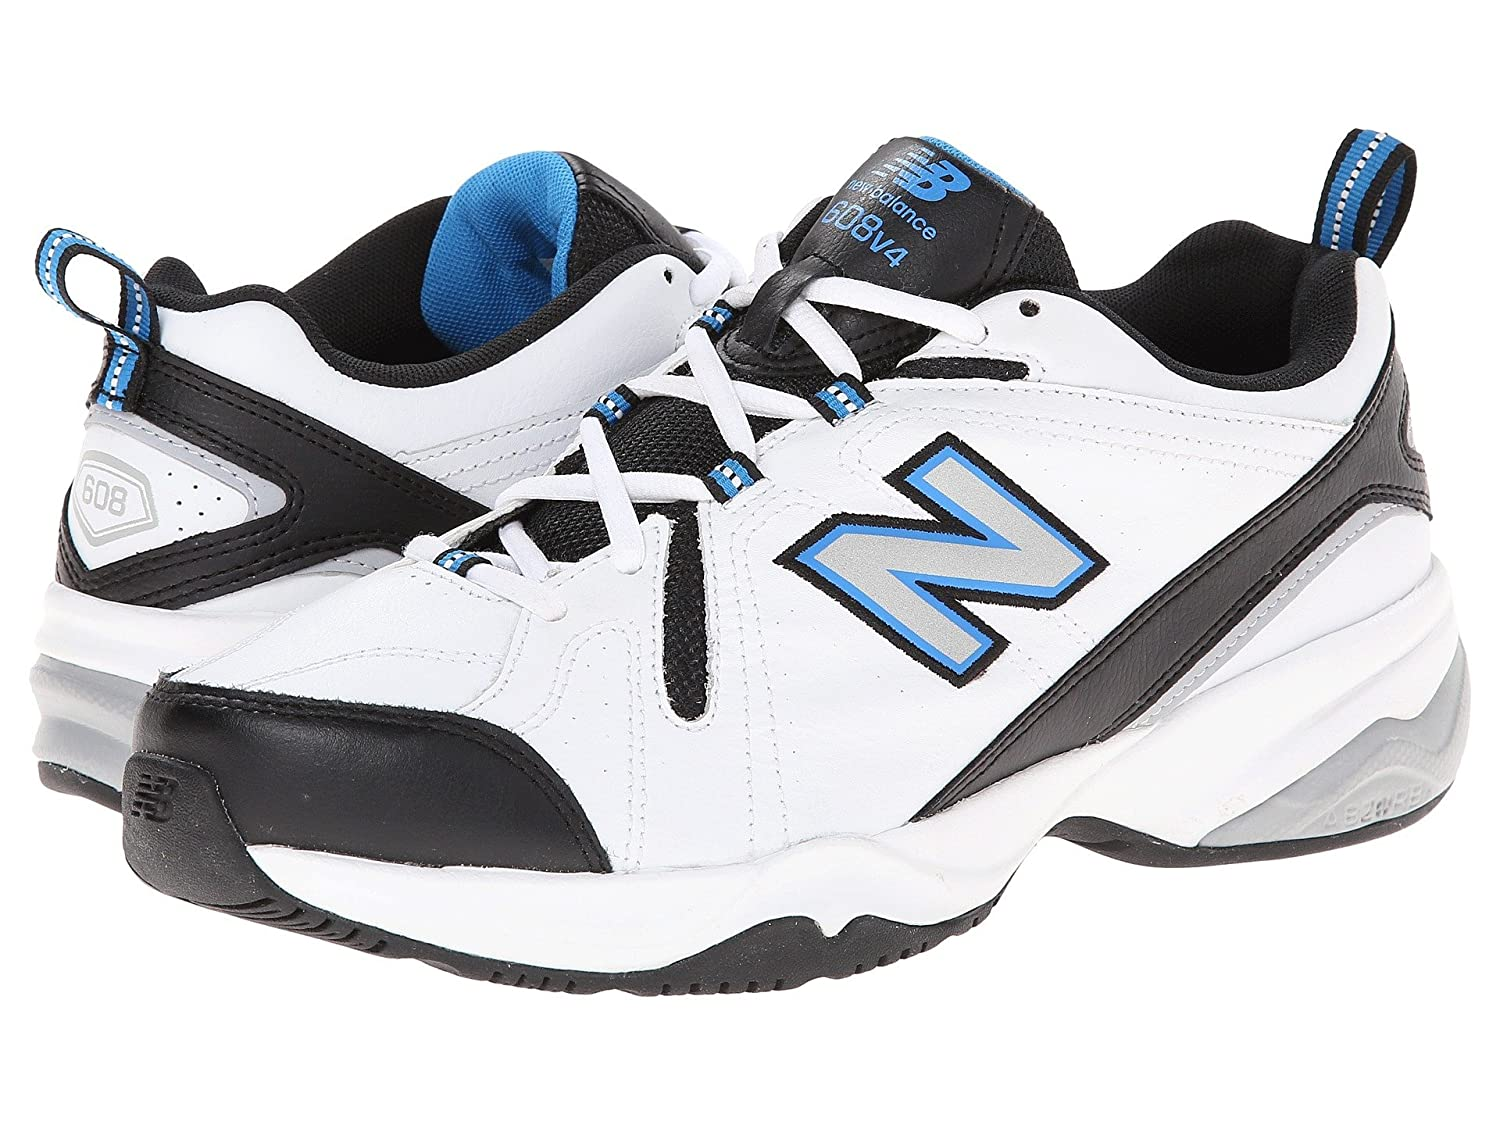 【数量は多】 (ニューバランス) Balance New Balance メンズウォーキングシューズ靴 MX608v4 White 9.5/Royal White/Royal 9.5 (27.5cm) EE - Wide B078NJPBJ7, ネットワークカメラのCamTech:1c0aef45 --- arianechie.dominiotemporario.com